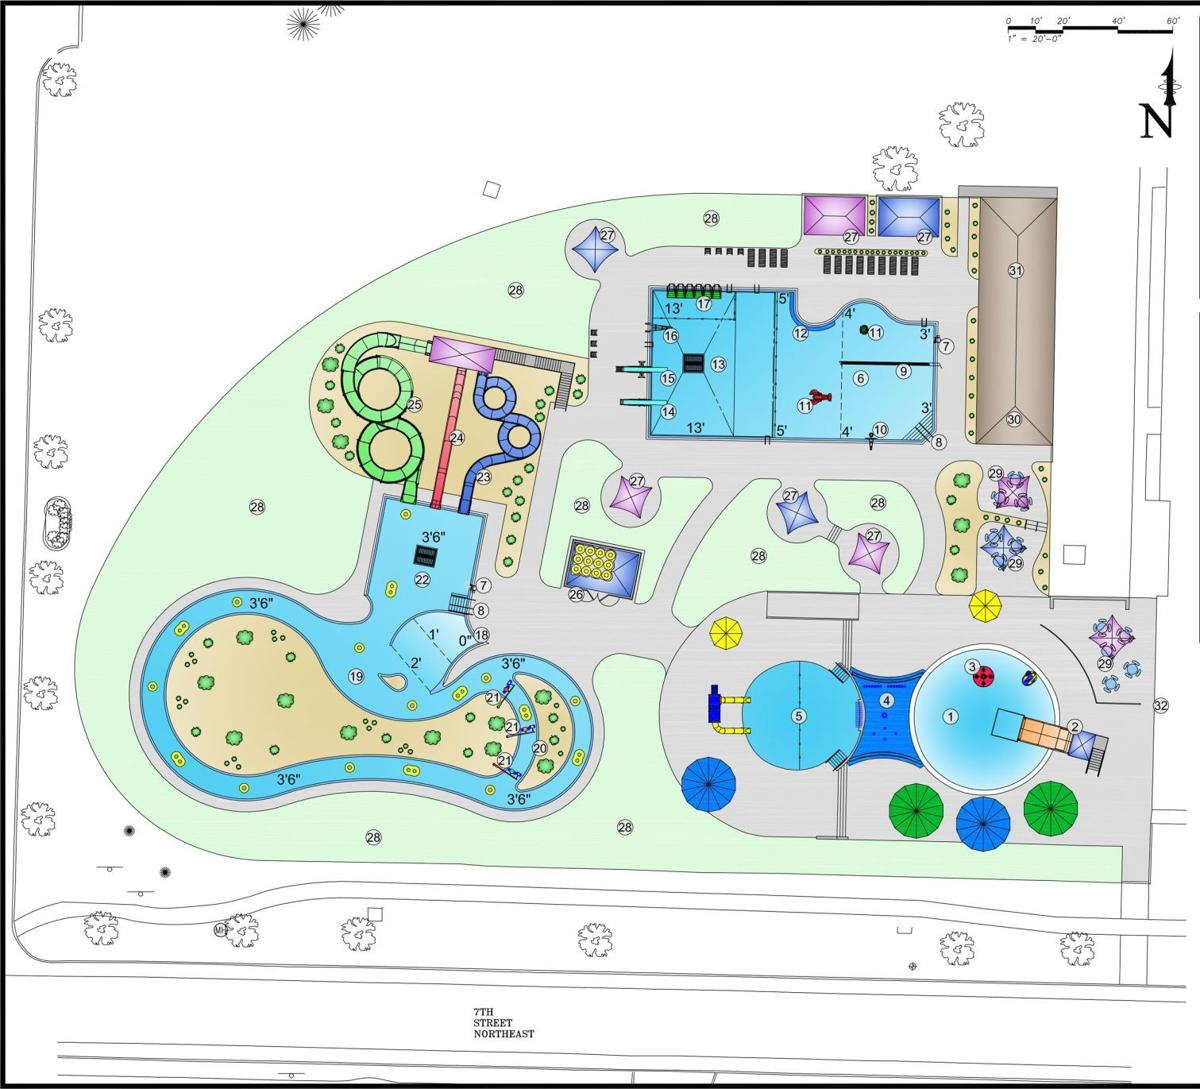 Sioux Center possible aquatic center addition